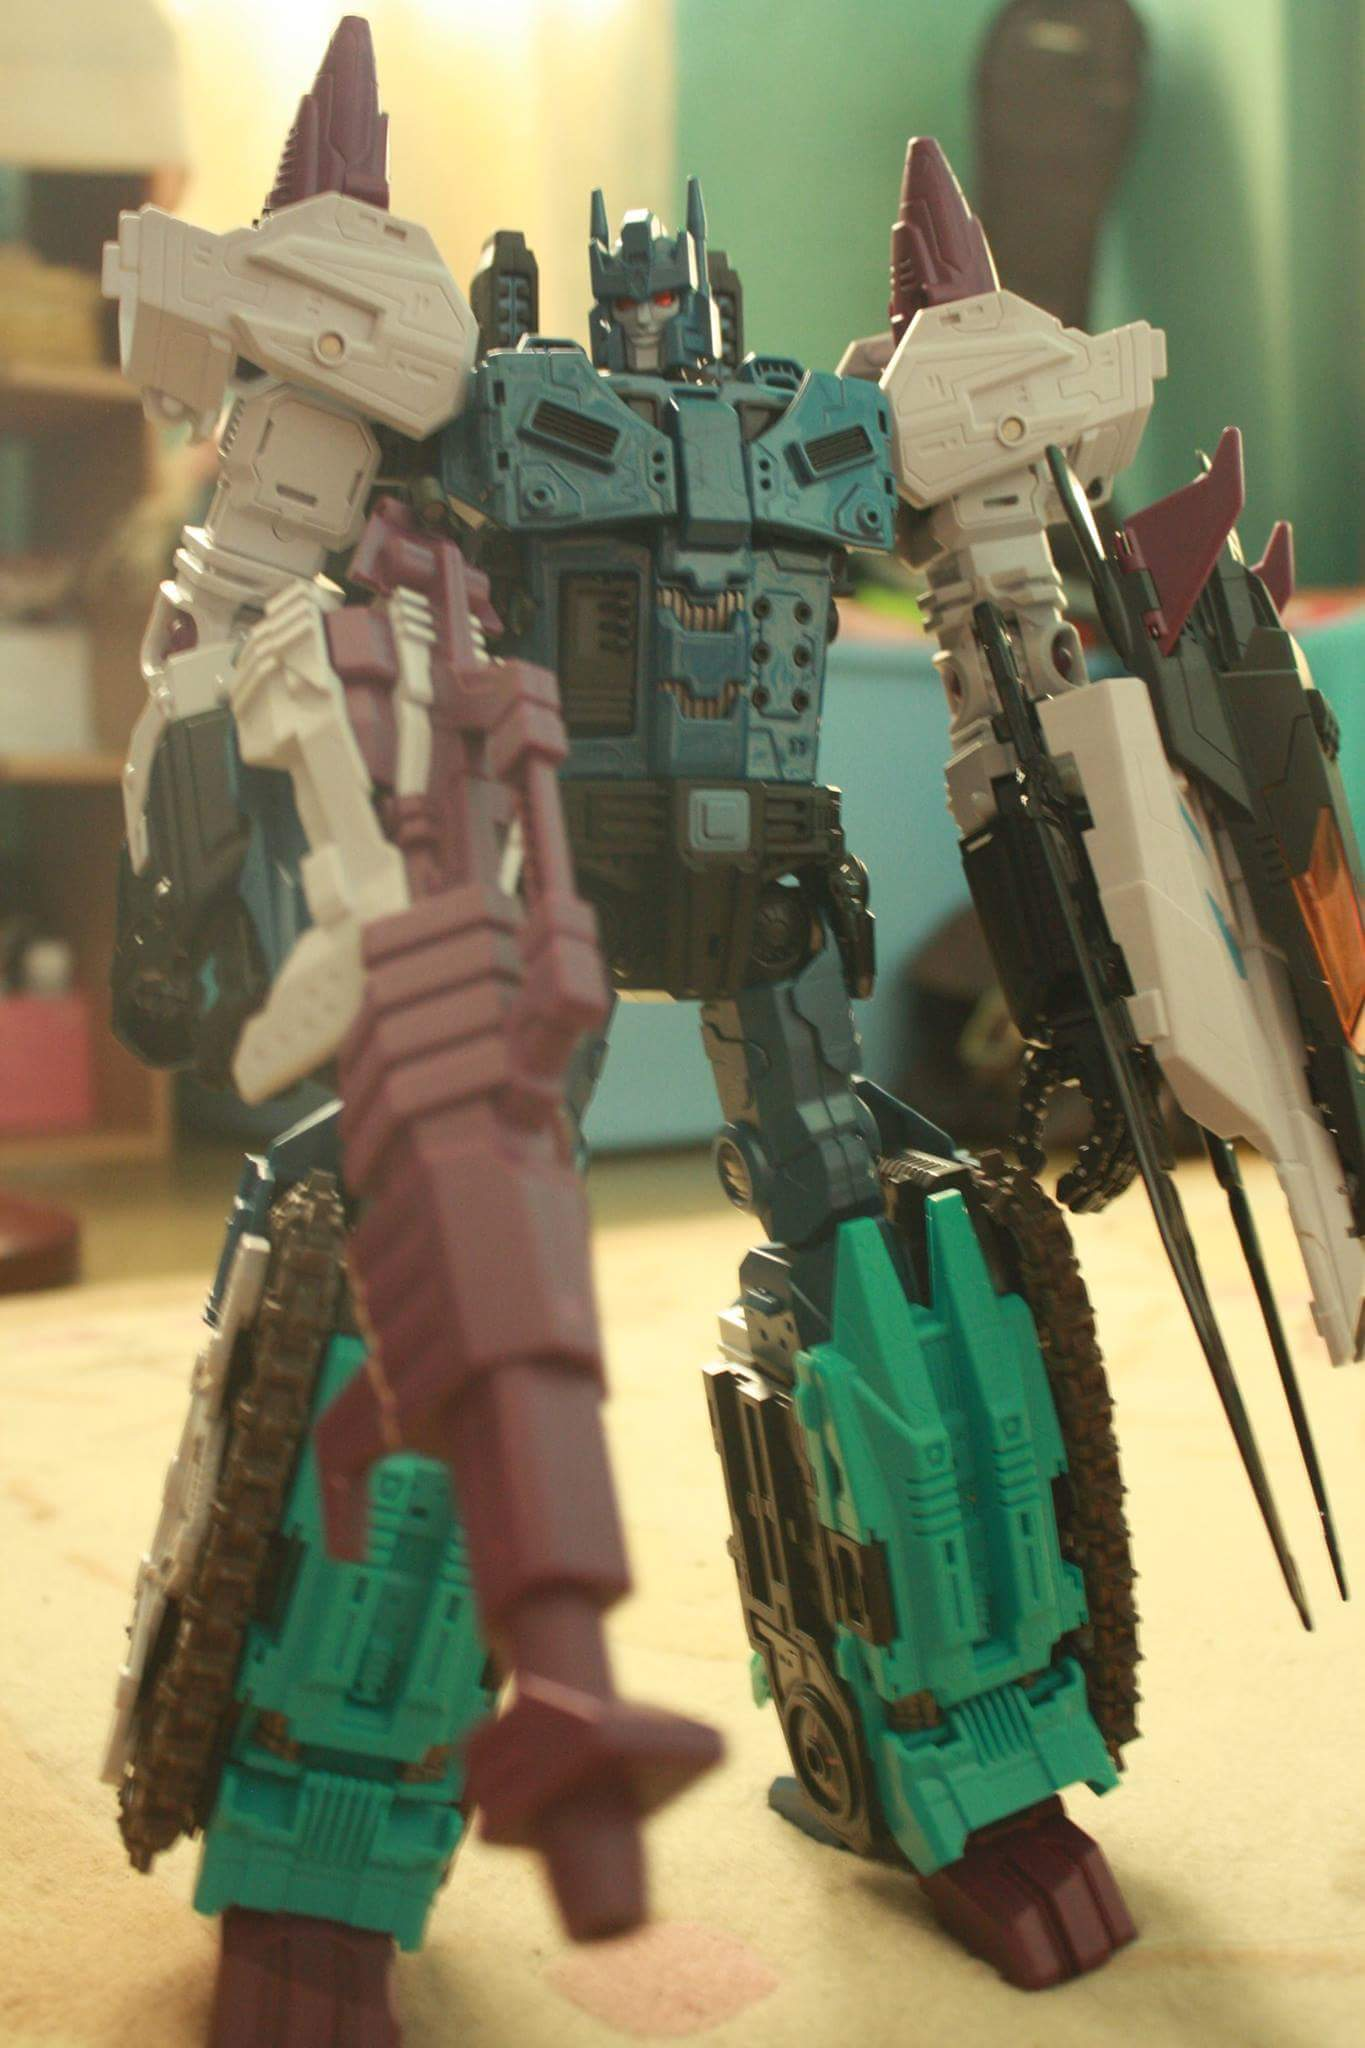 [Mastermind Creations] Produit Tiers - R-17 Carnifex - aka Overlord (TF Masterforce) - Page 3 E1RbADOg